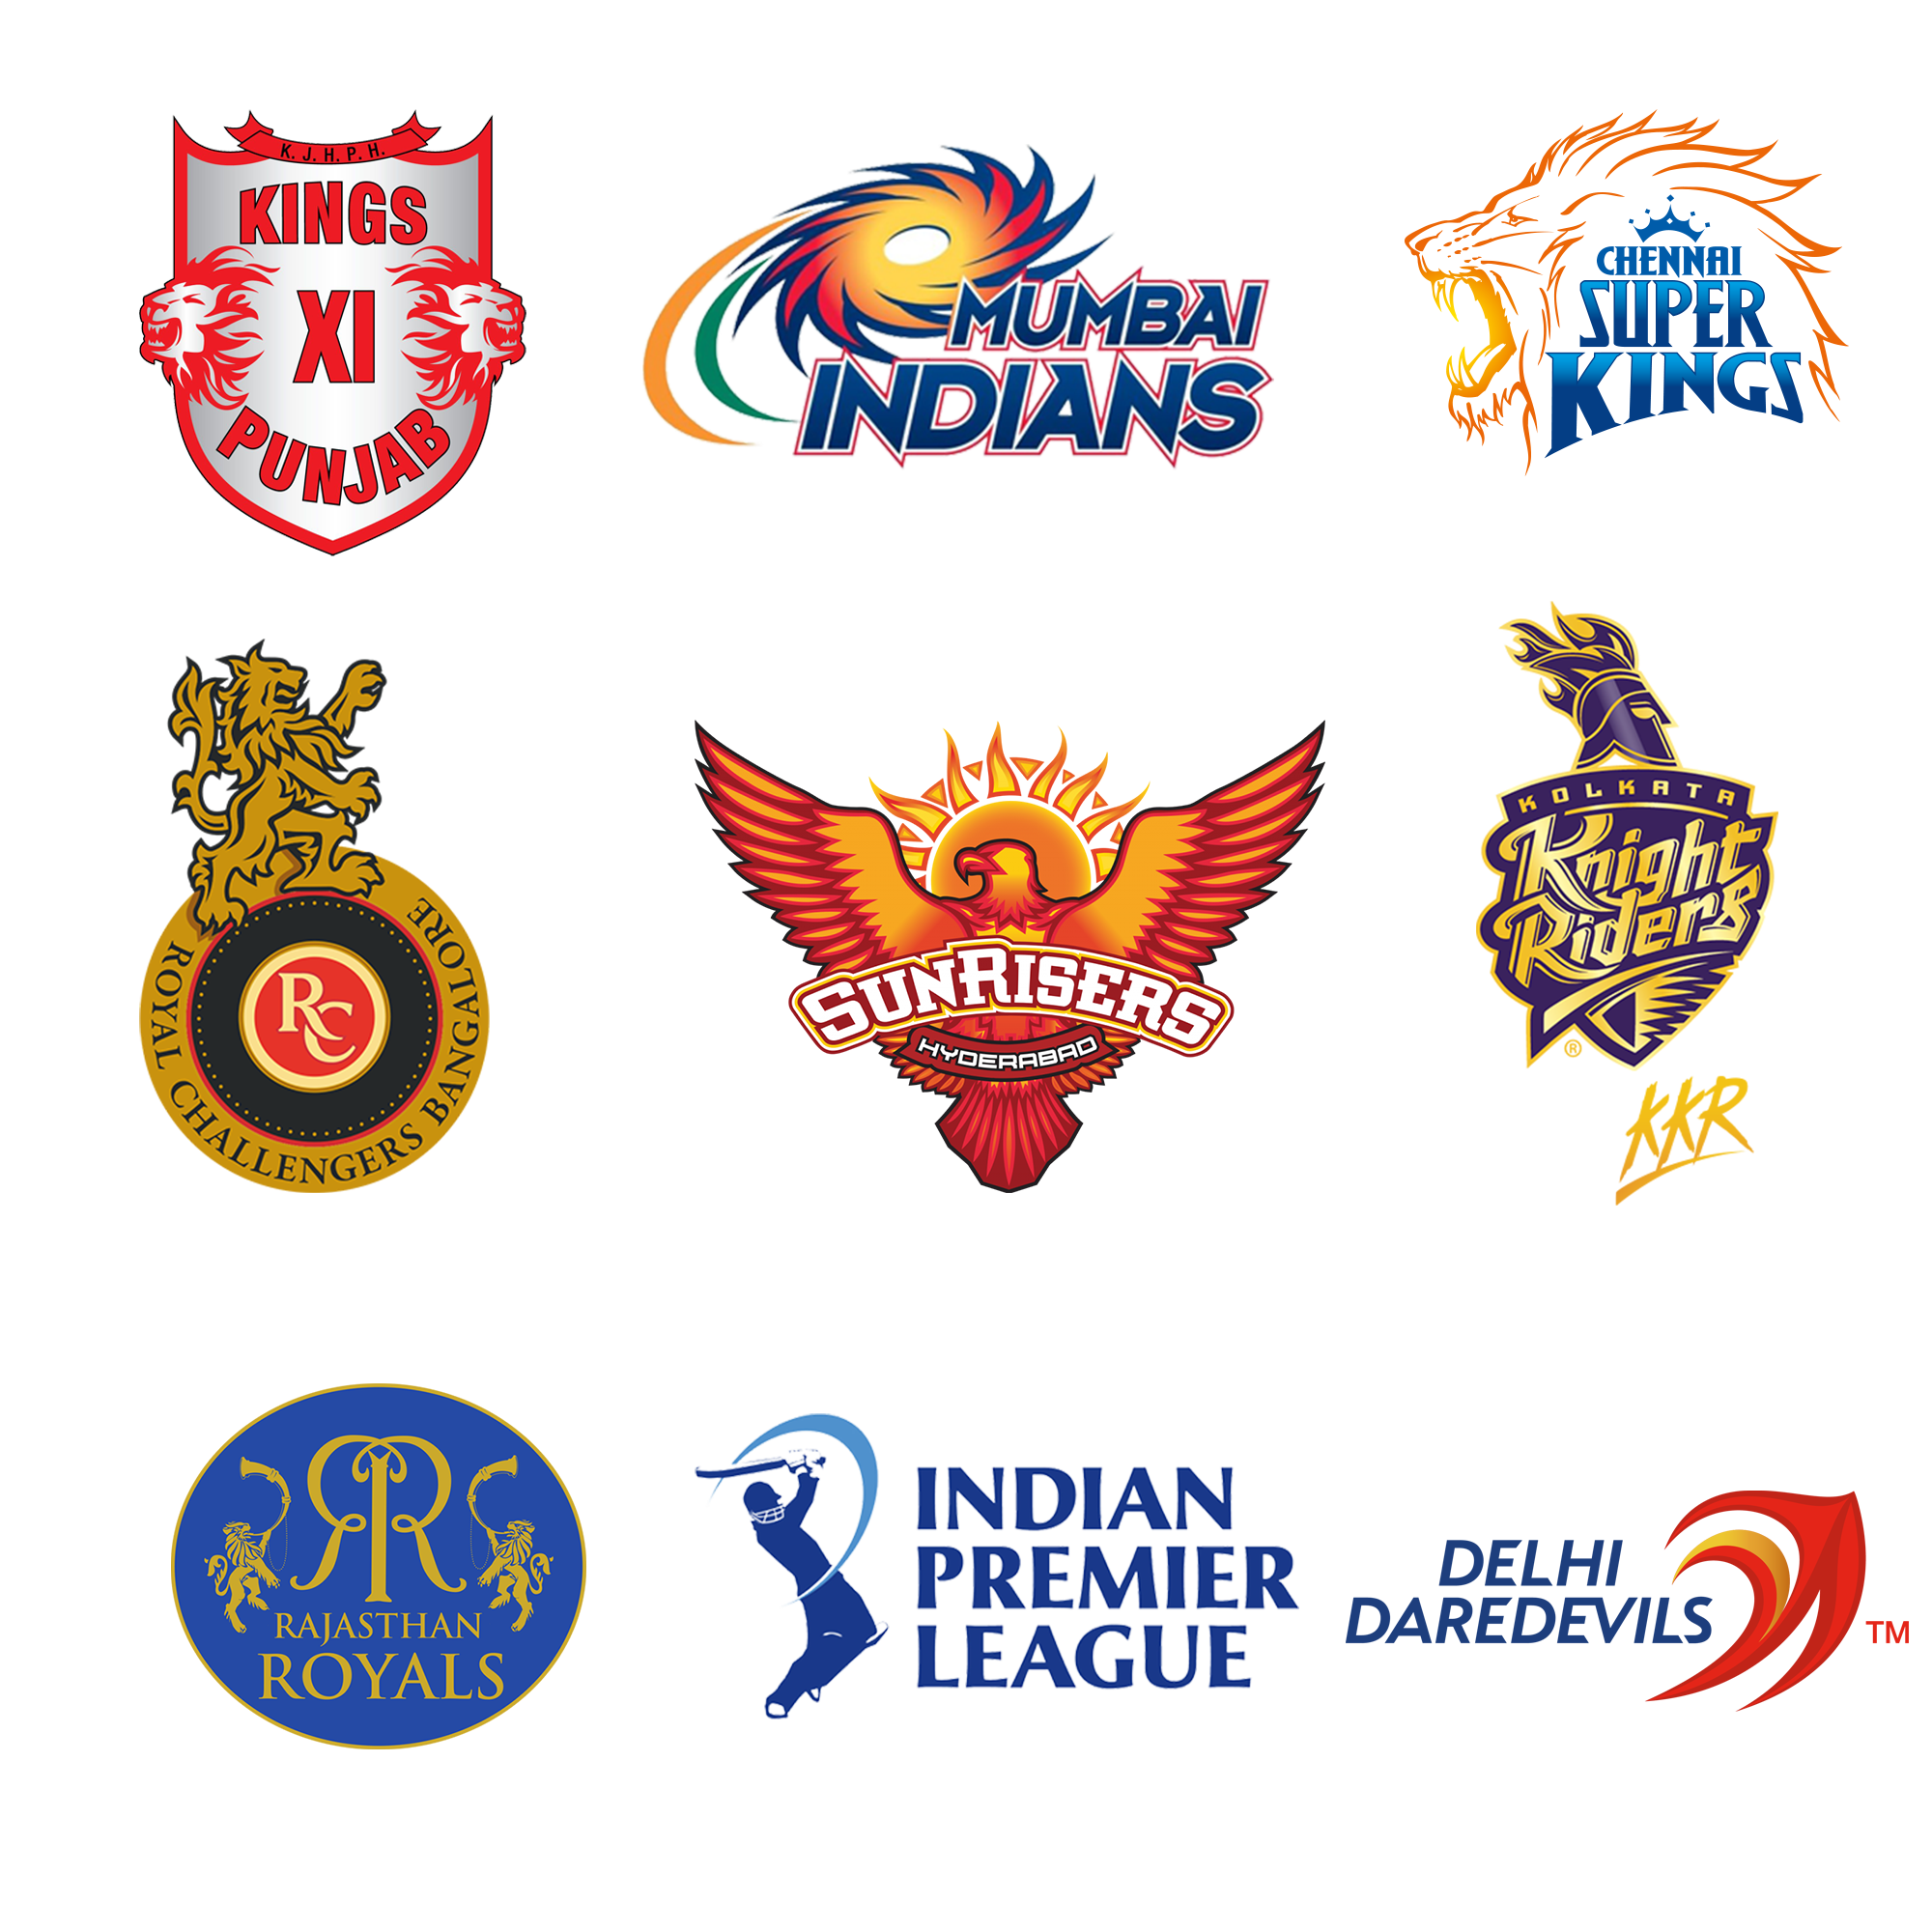 Vivo Ipl 2020 Schedule Team Venue Time Table Pdf Point Table Ranking Winning Prediction By Wishthisyear Aug 2020 Medium